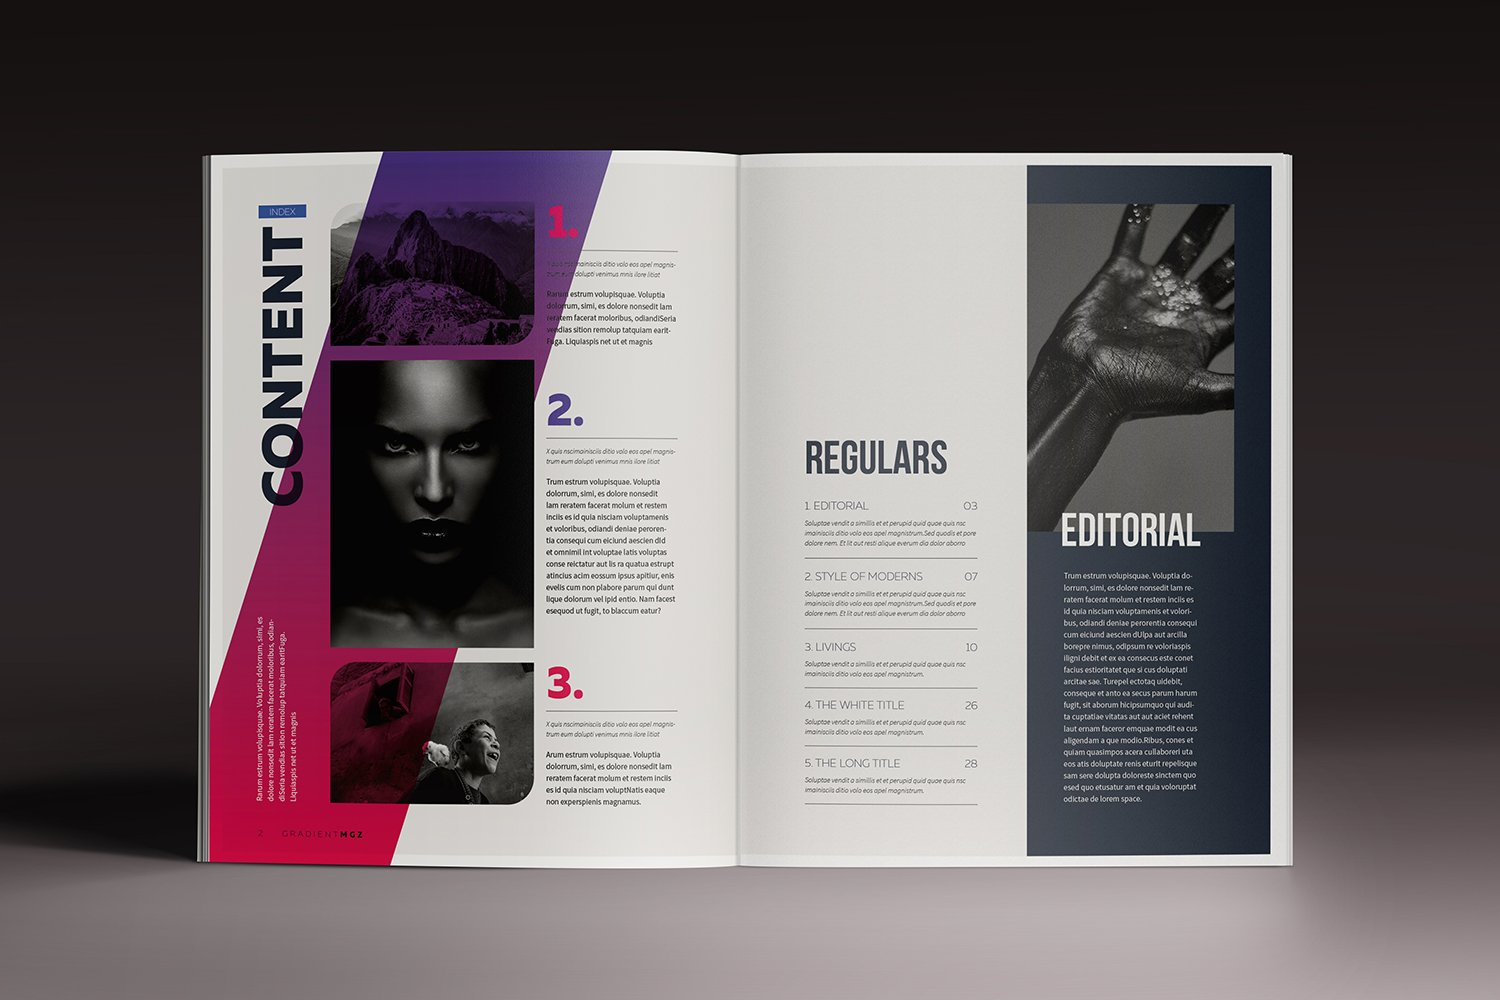 adobe indesign magazine template download free - gradient magazine indesign template magazine templates